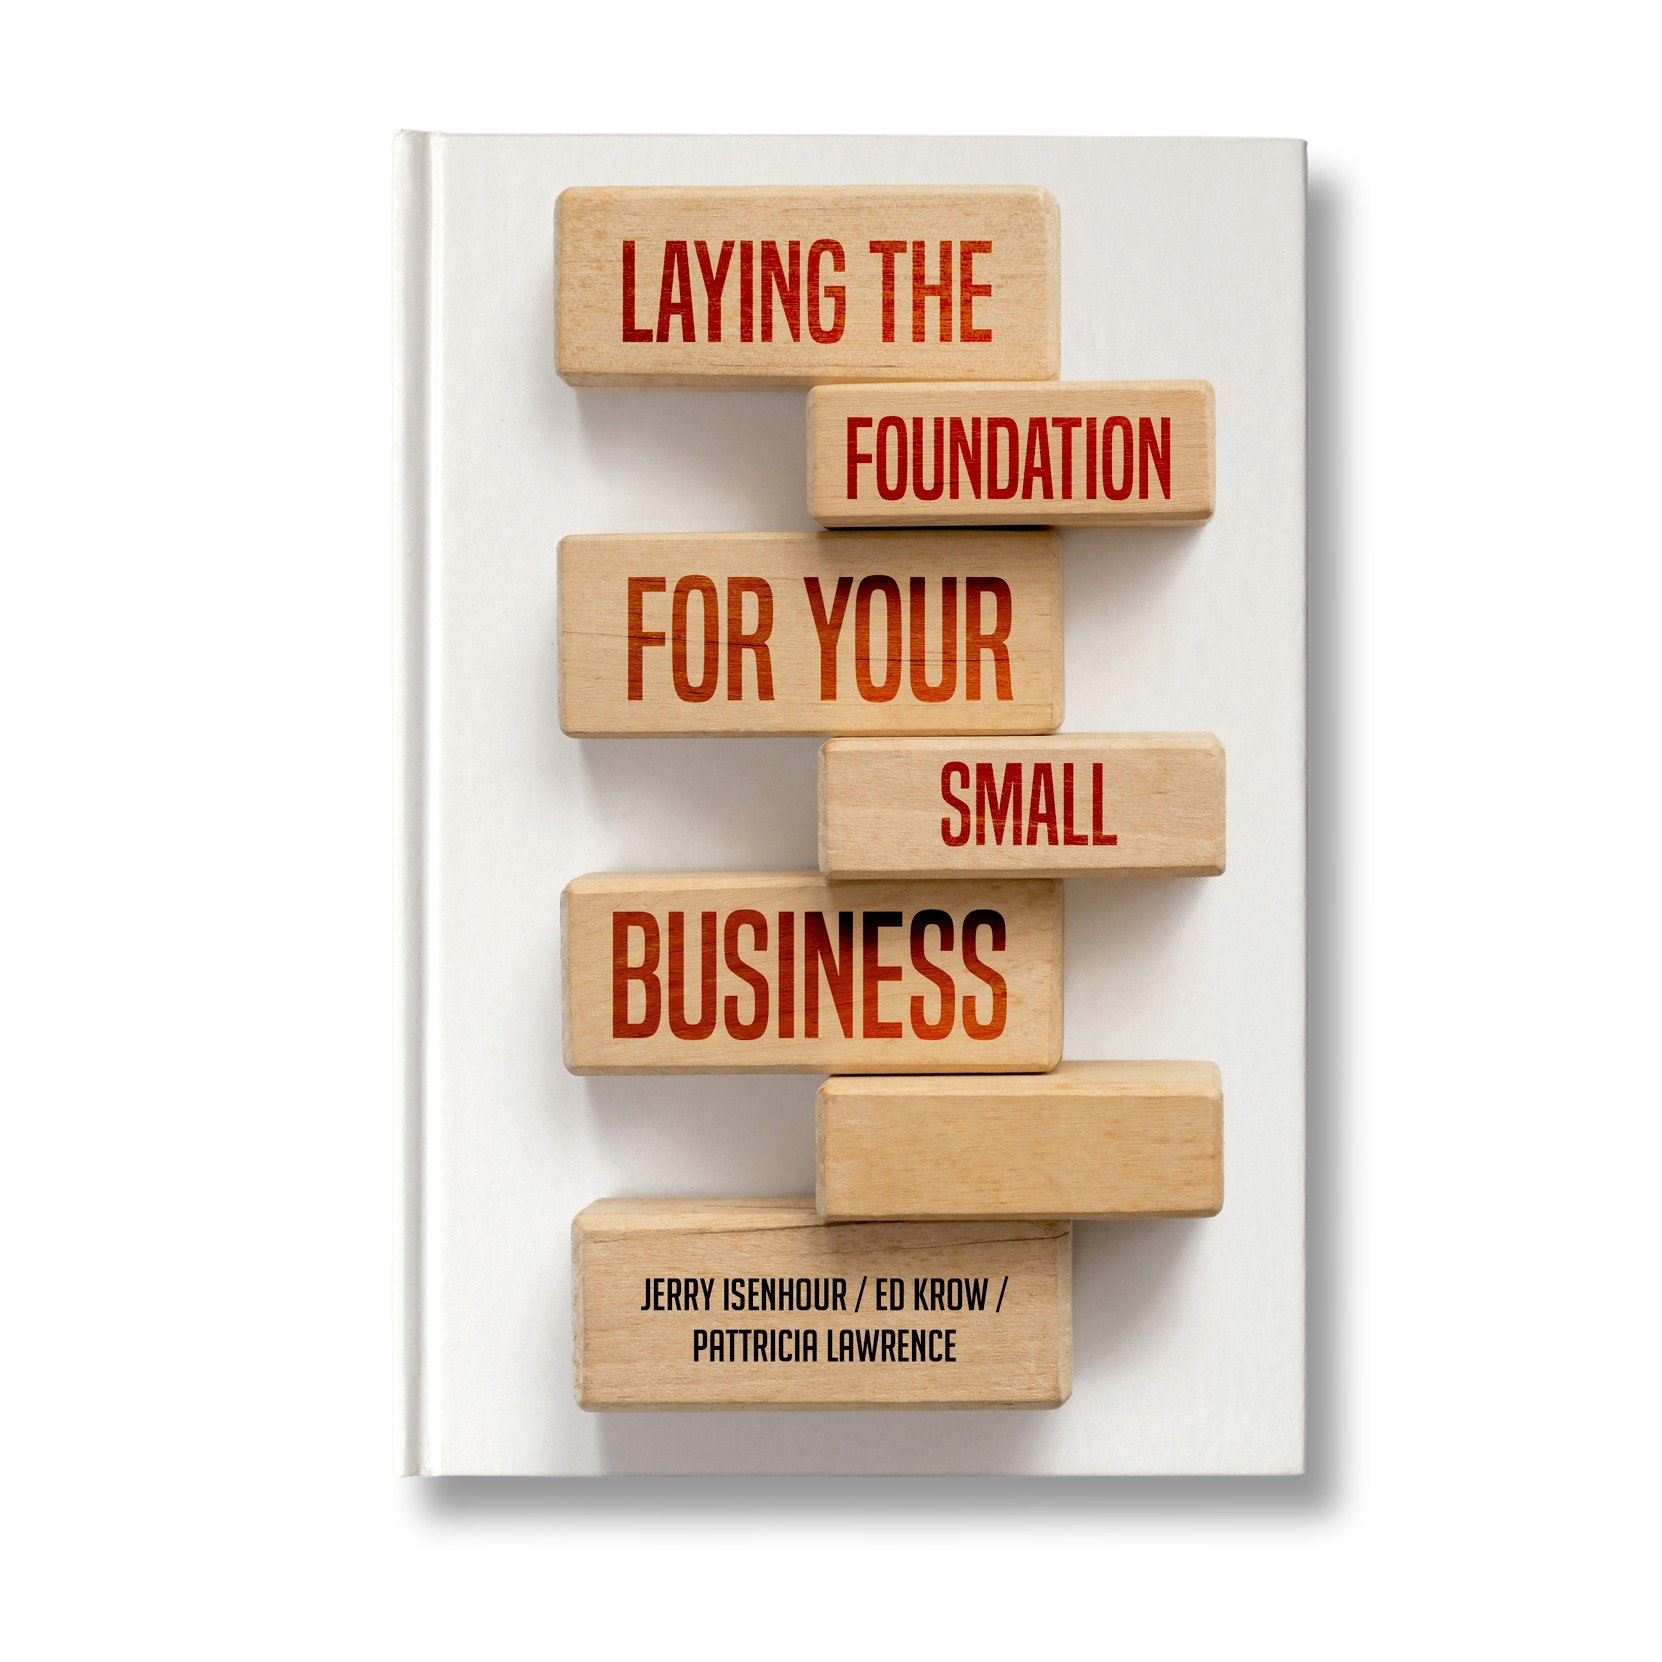 3D inspired book cover for Laying the Foundation of Your Small Business